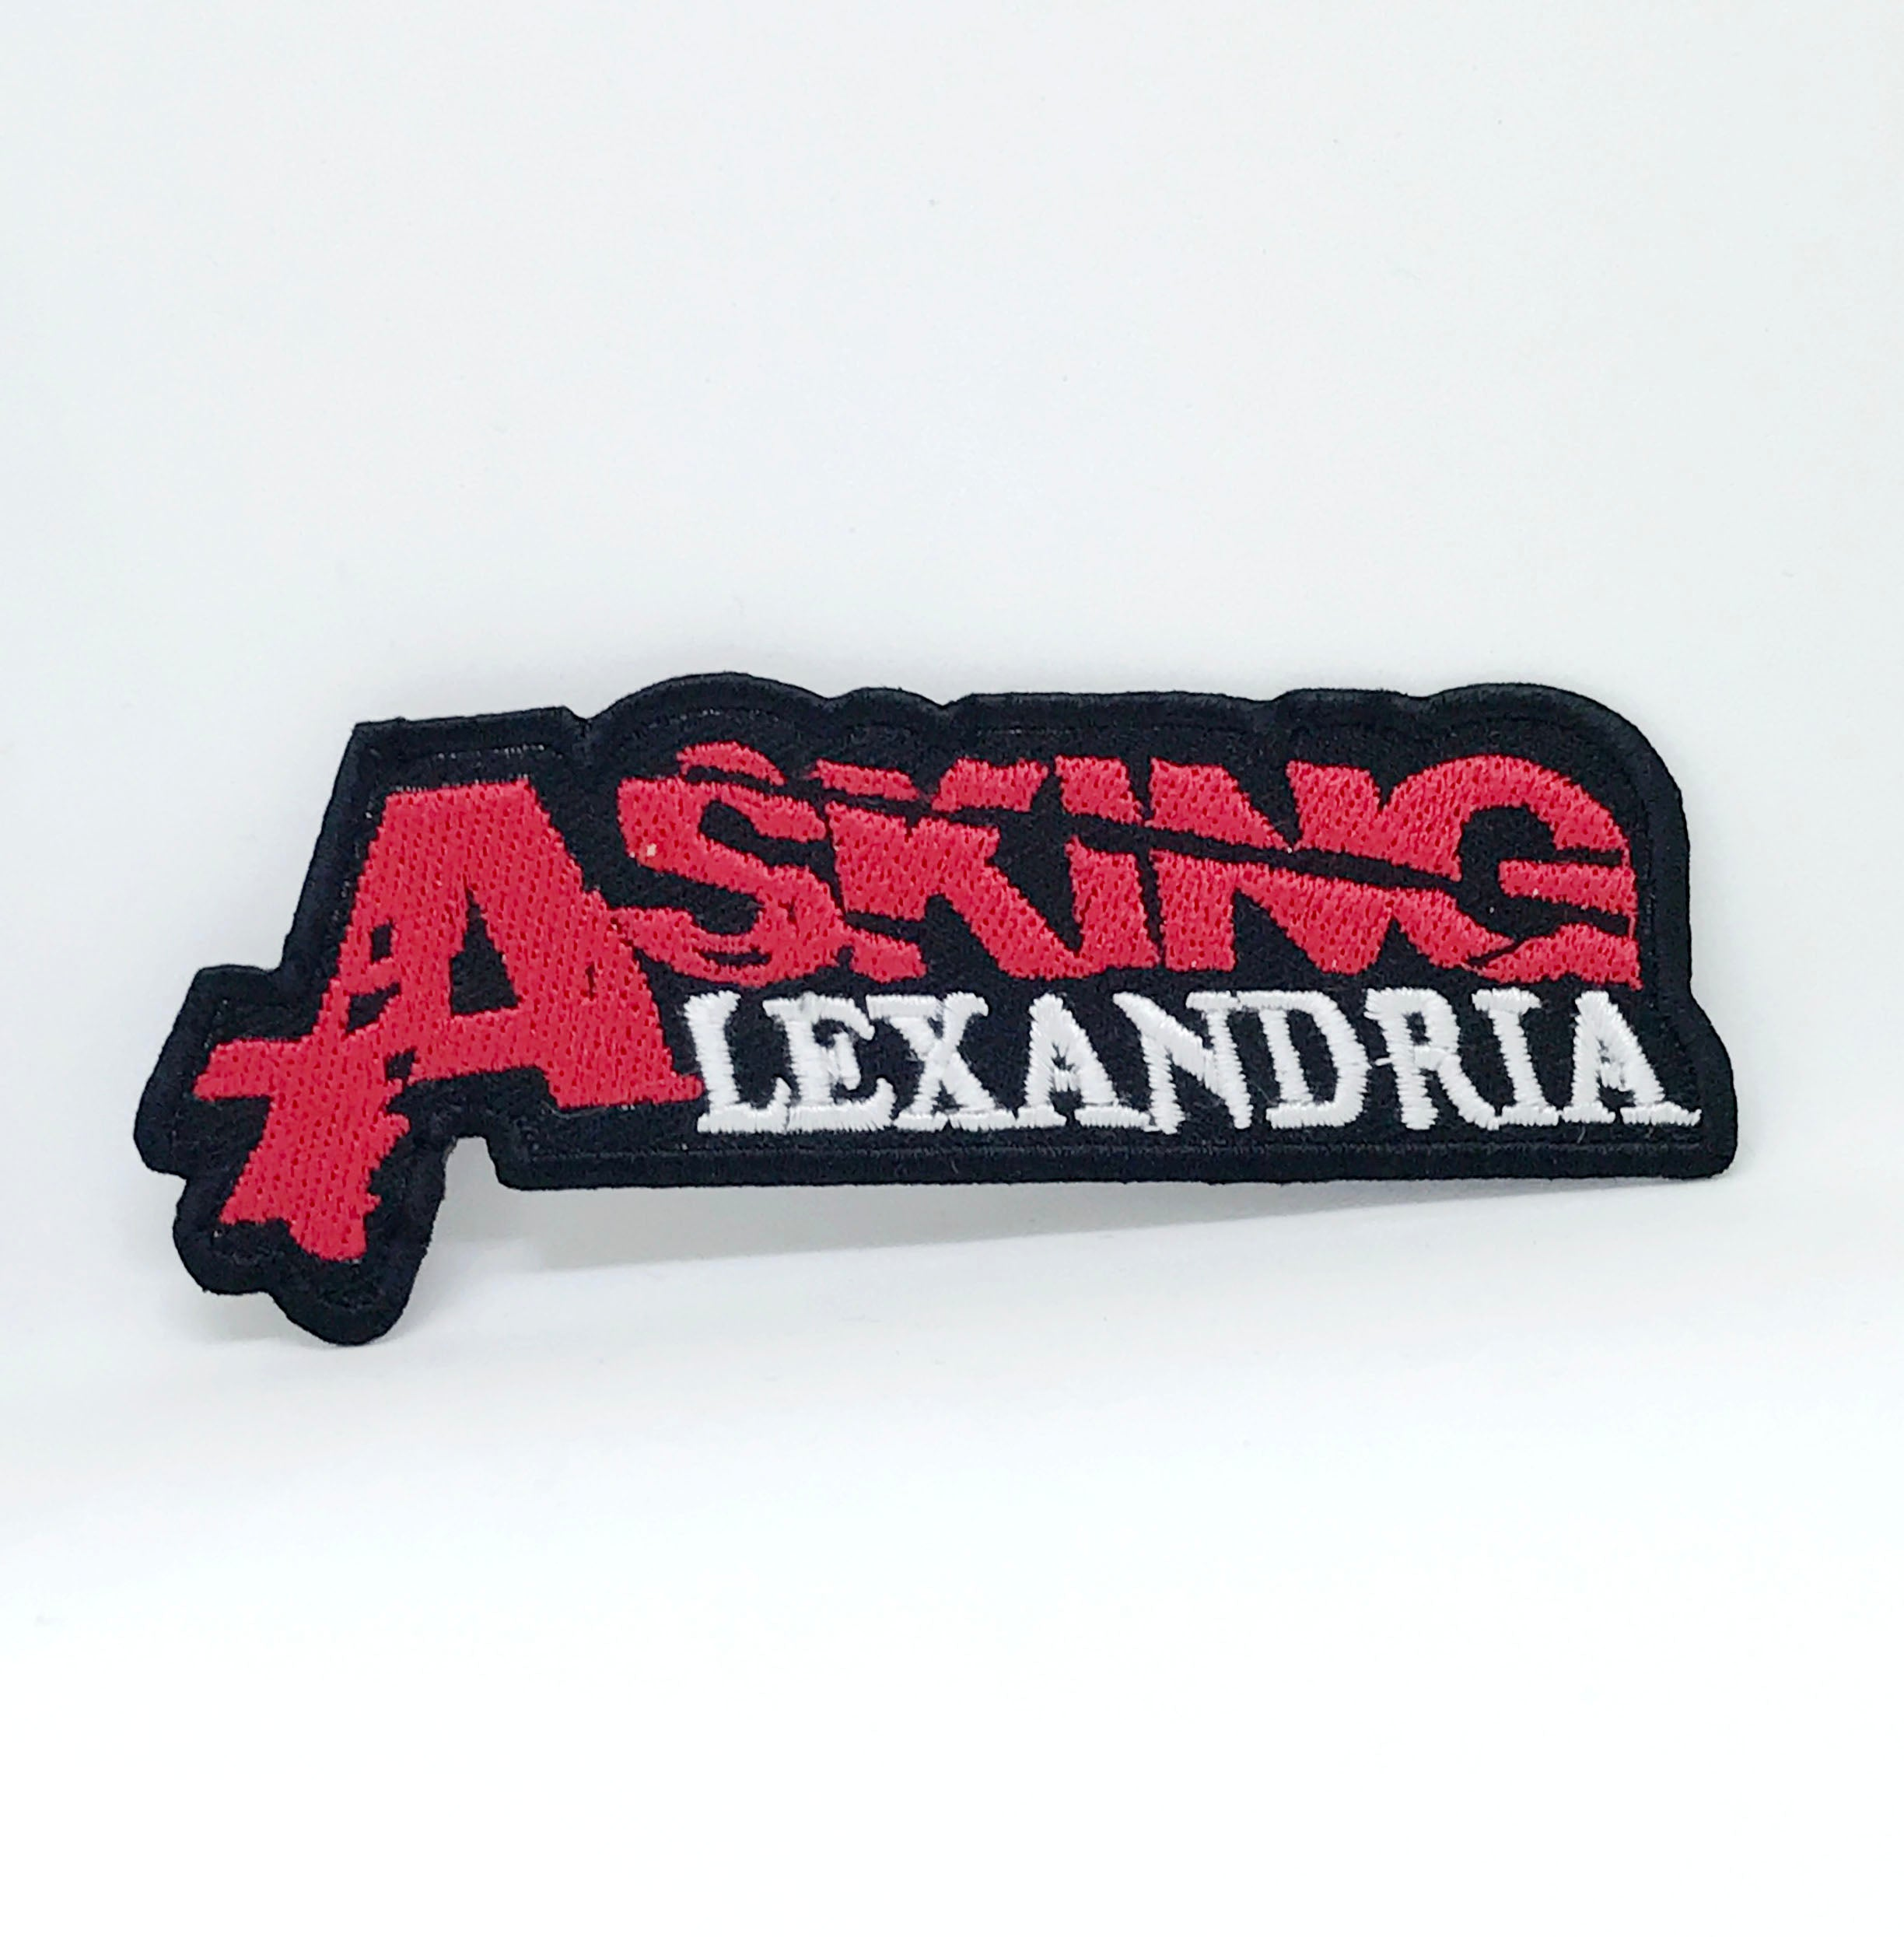 ASKING ALEXANDRIA METAL PUNK ROCK MUSIC IRON SEW ON EMBROIDERED PATCH